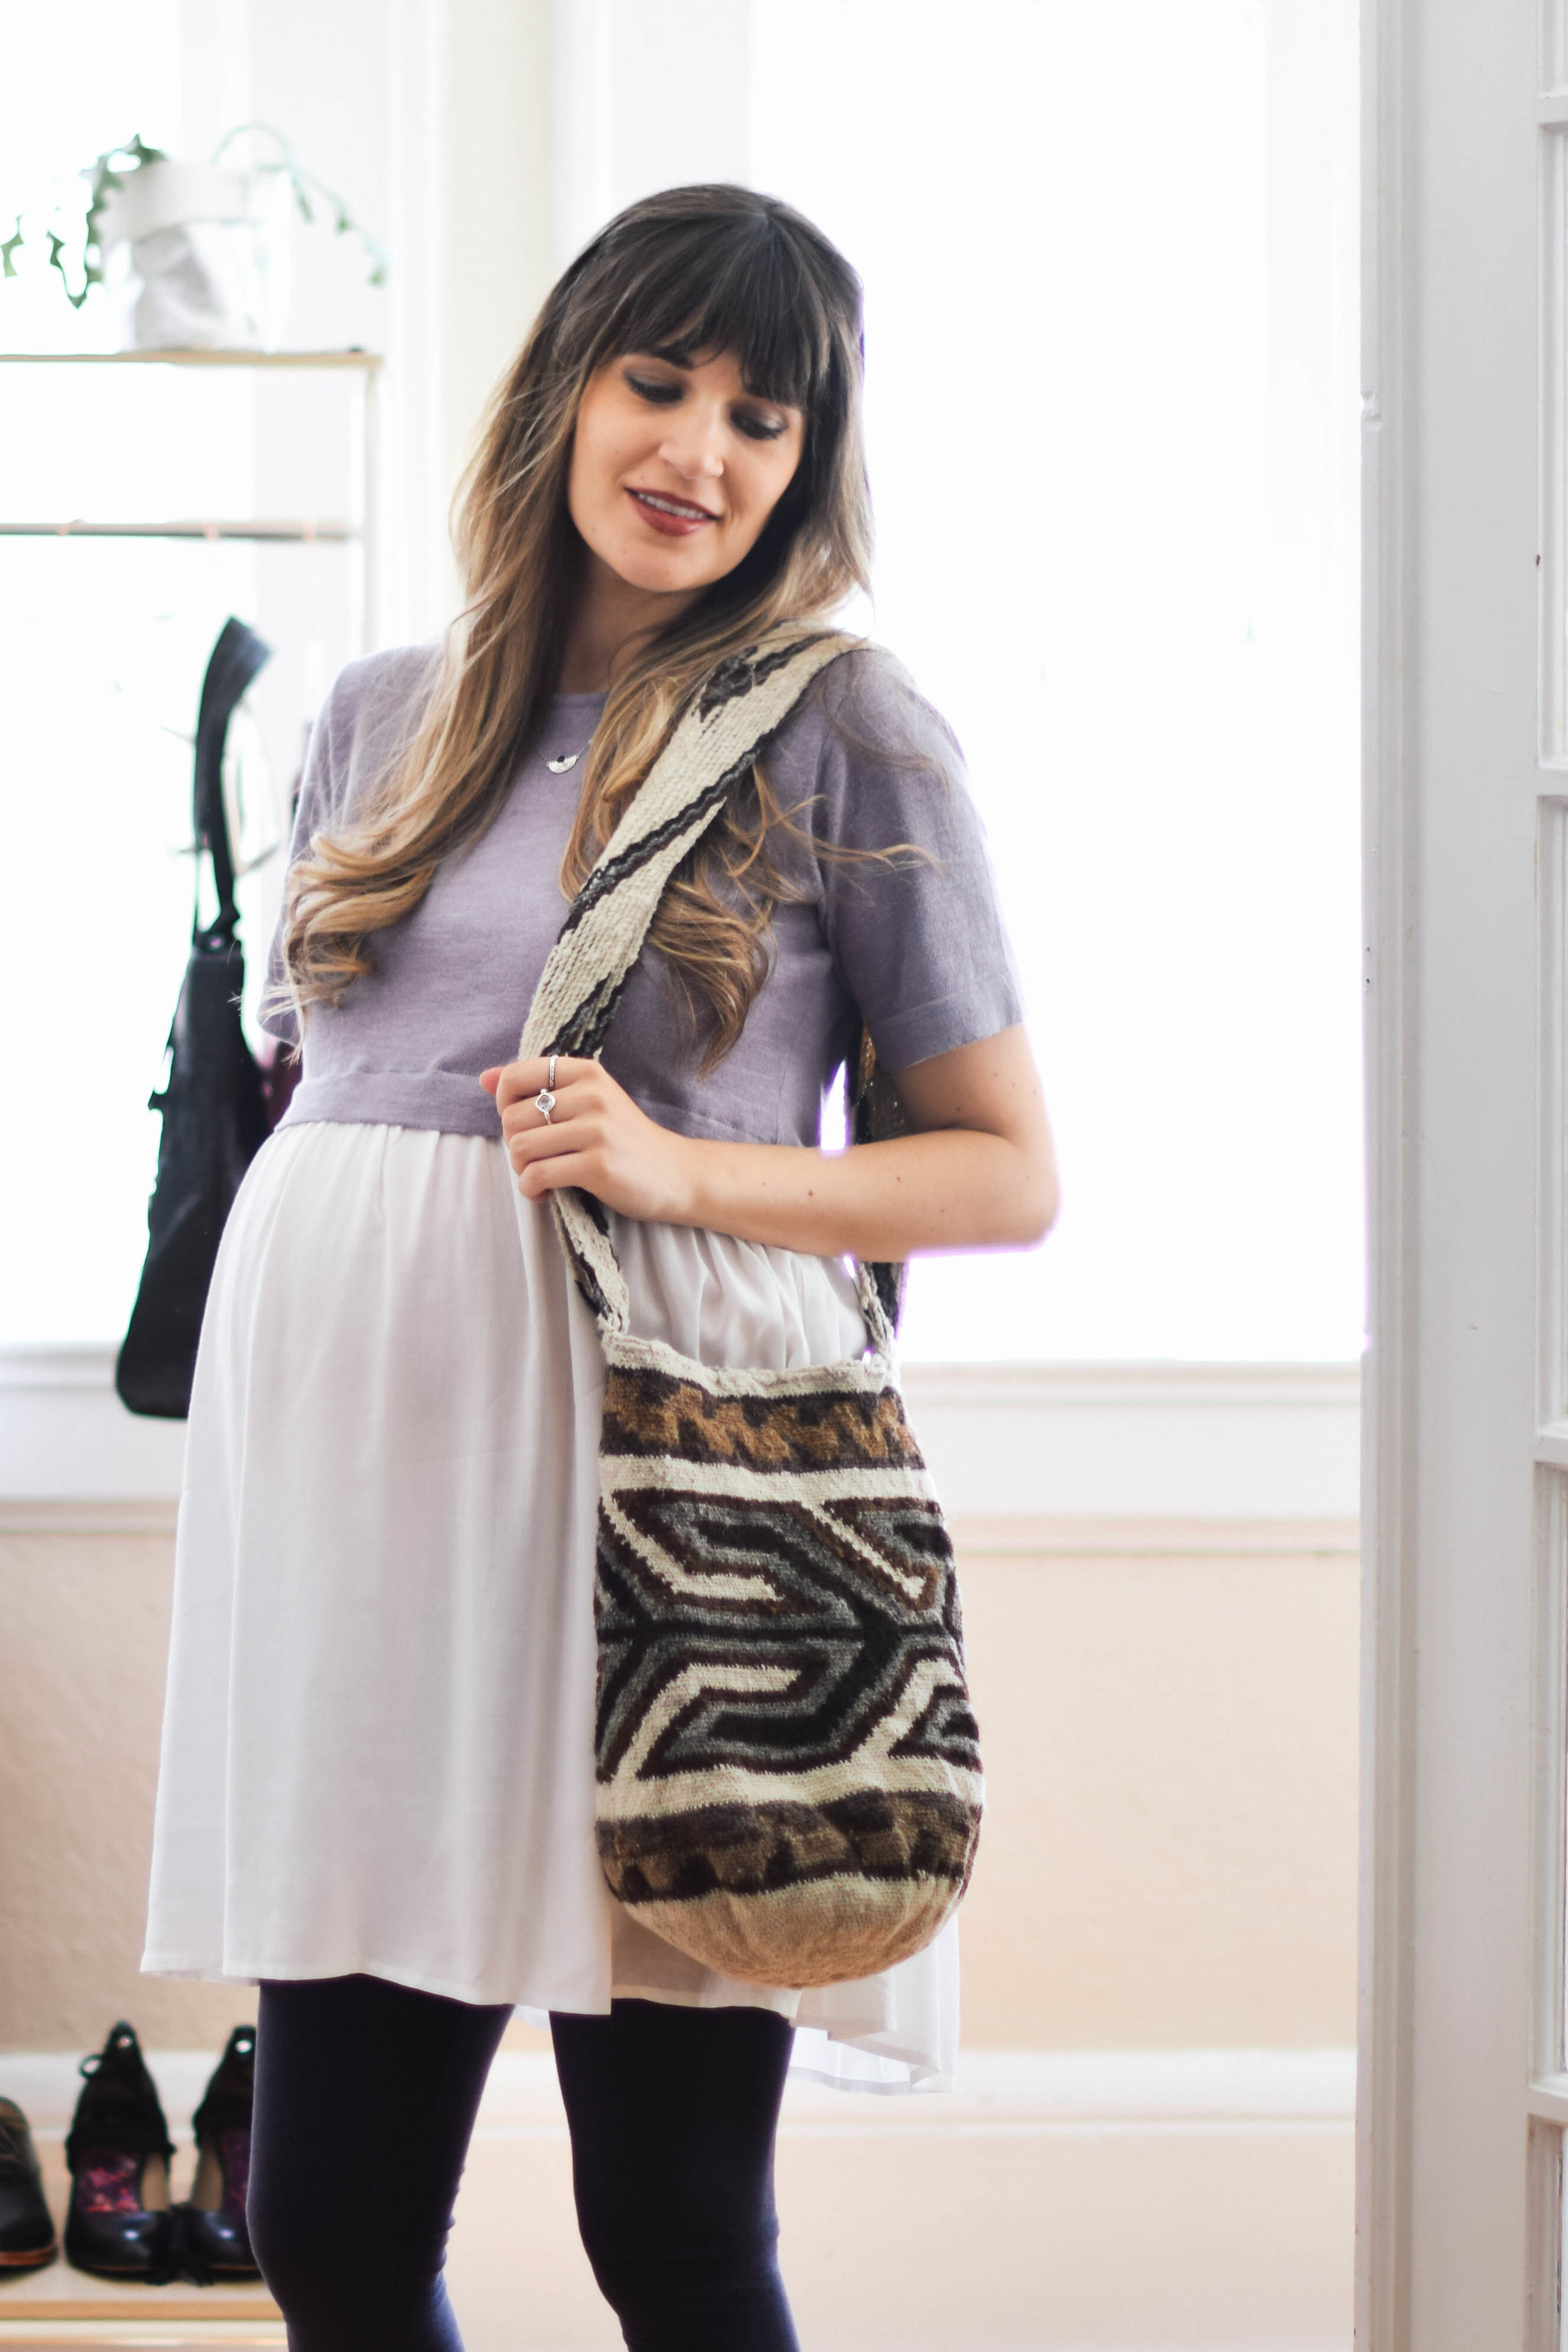 Artisan made woven bag // A Week Of Sustainable Maternity Outfits With Natalie Kay Smith From Sustainably Chic on The Good Trade